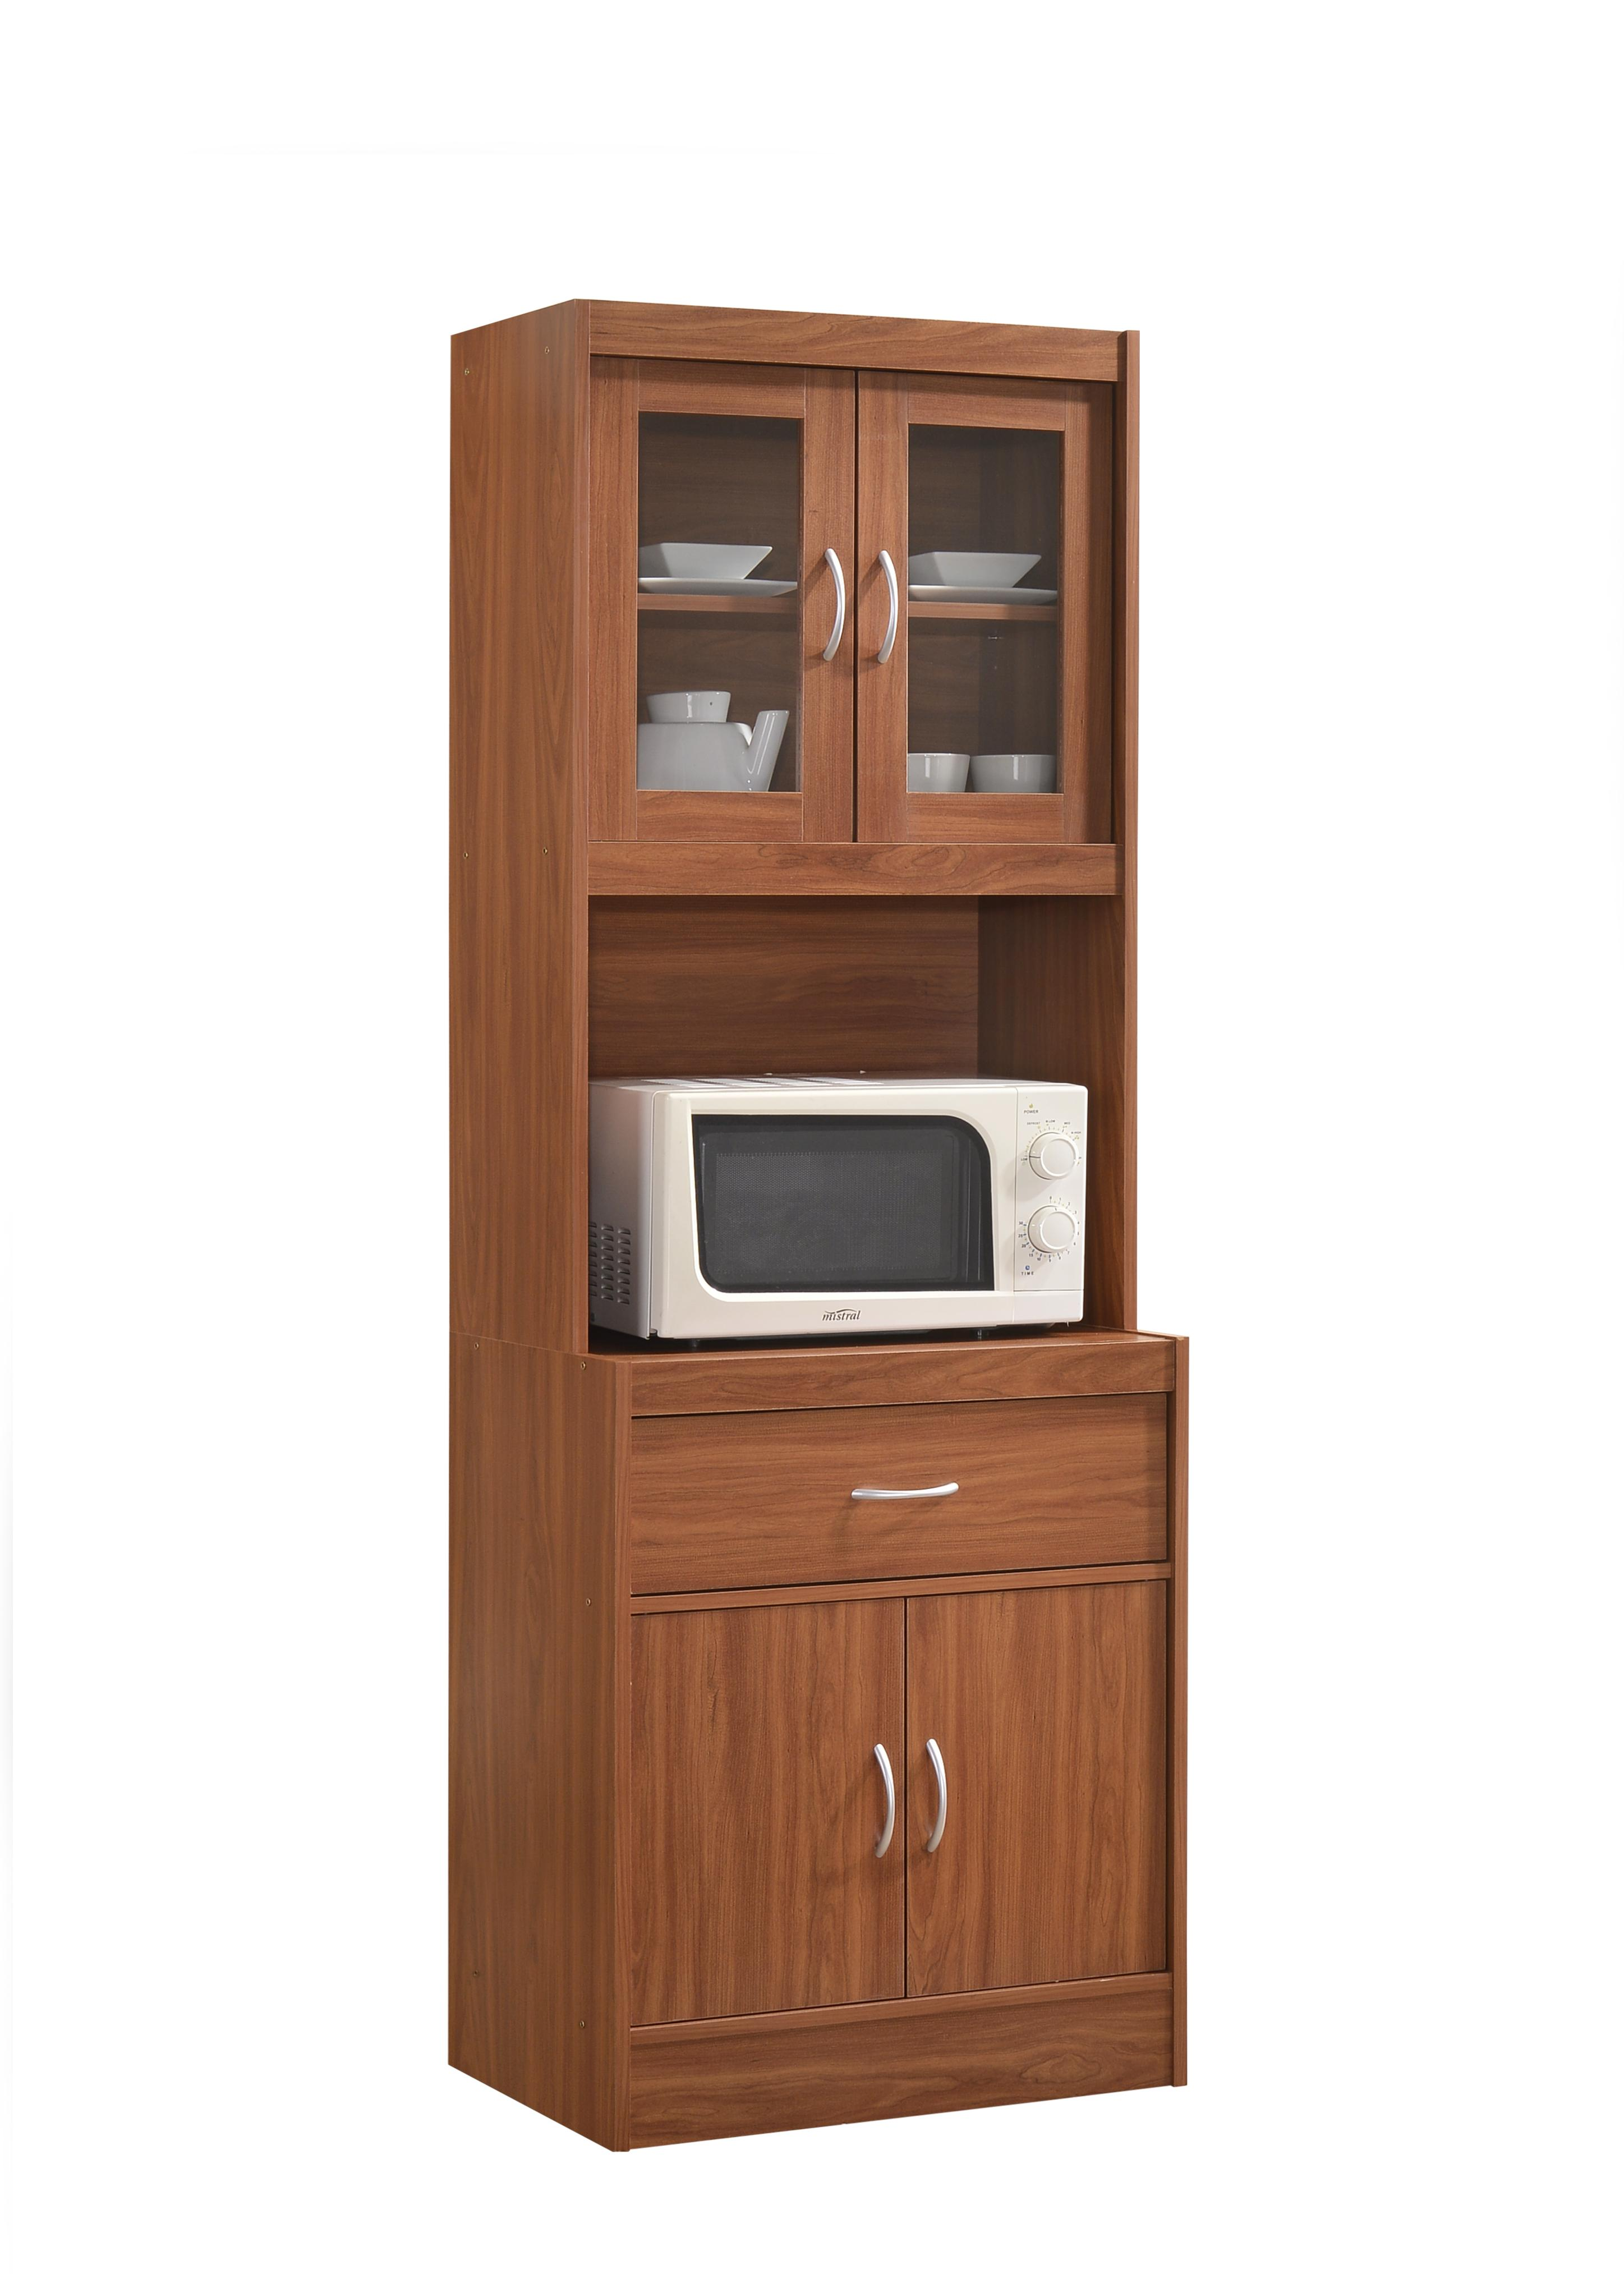 Hodedah Long Standing Kitchen Cabinet With Top Bottom Enclosed Cabinet Space One